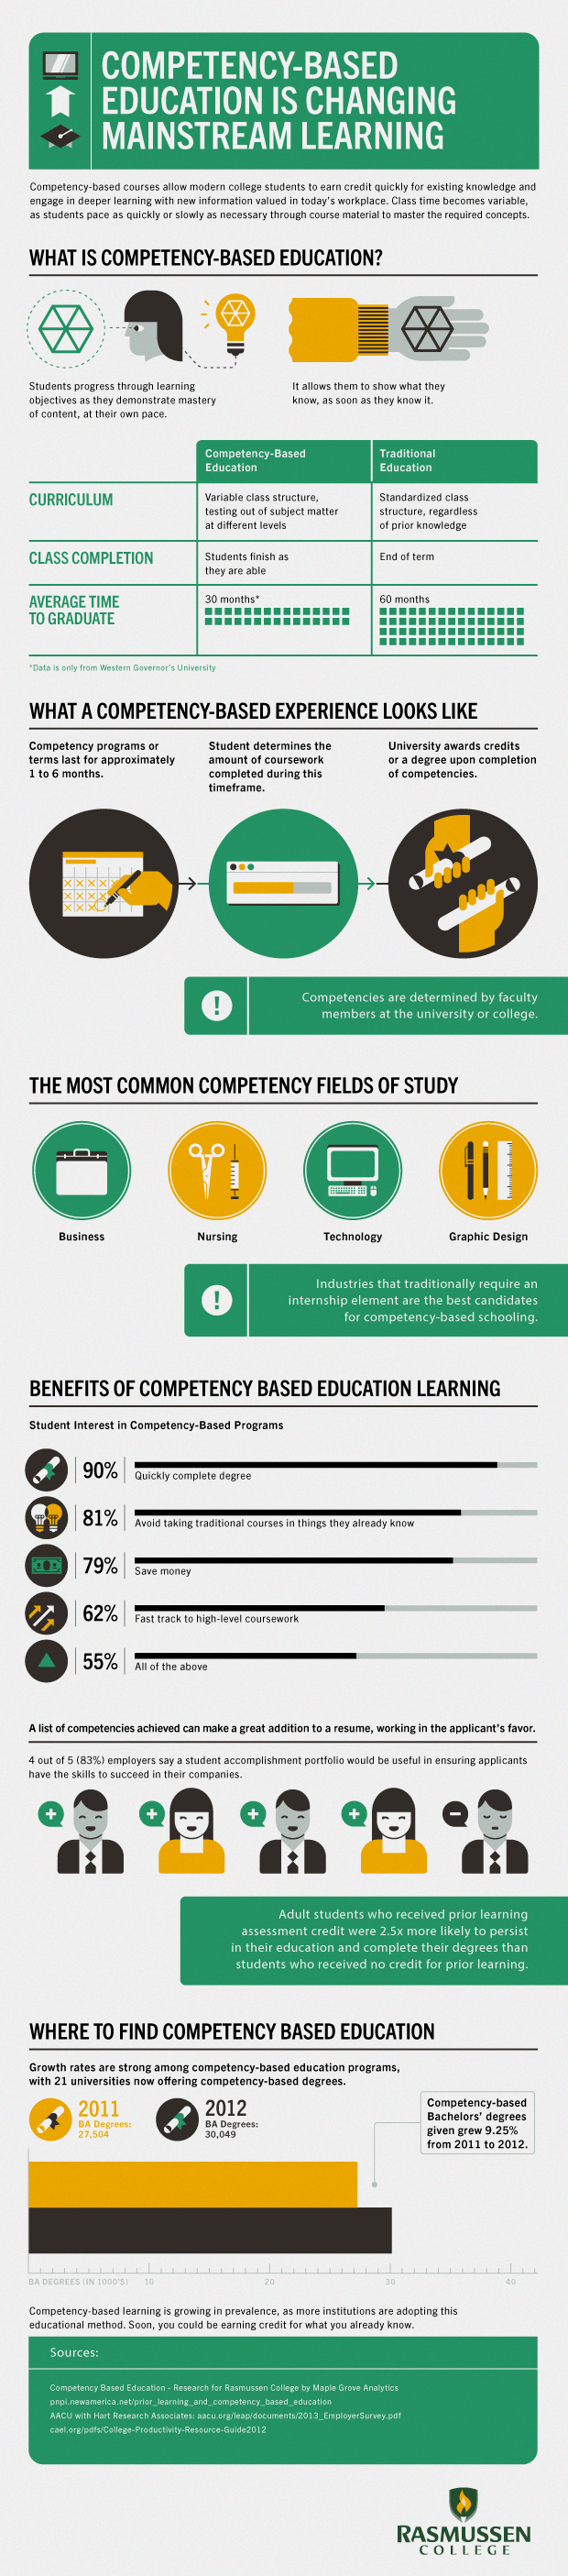 How Competency-Based Education is Changing Mainstream Learning Infographic